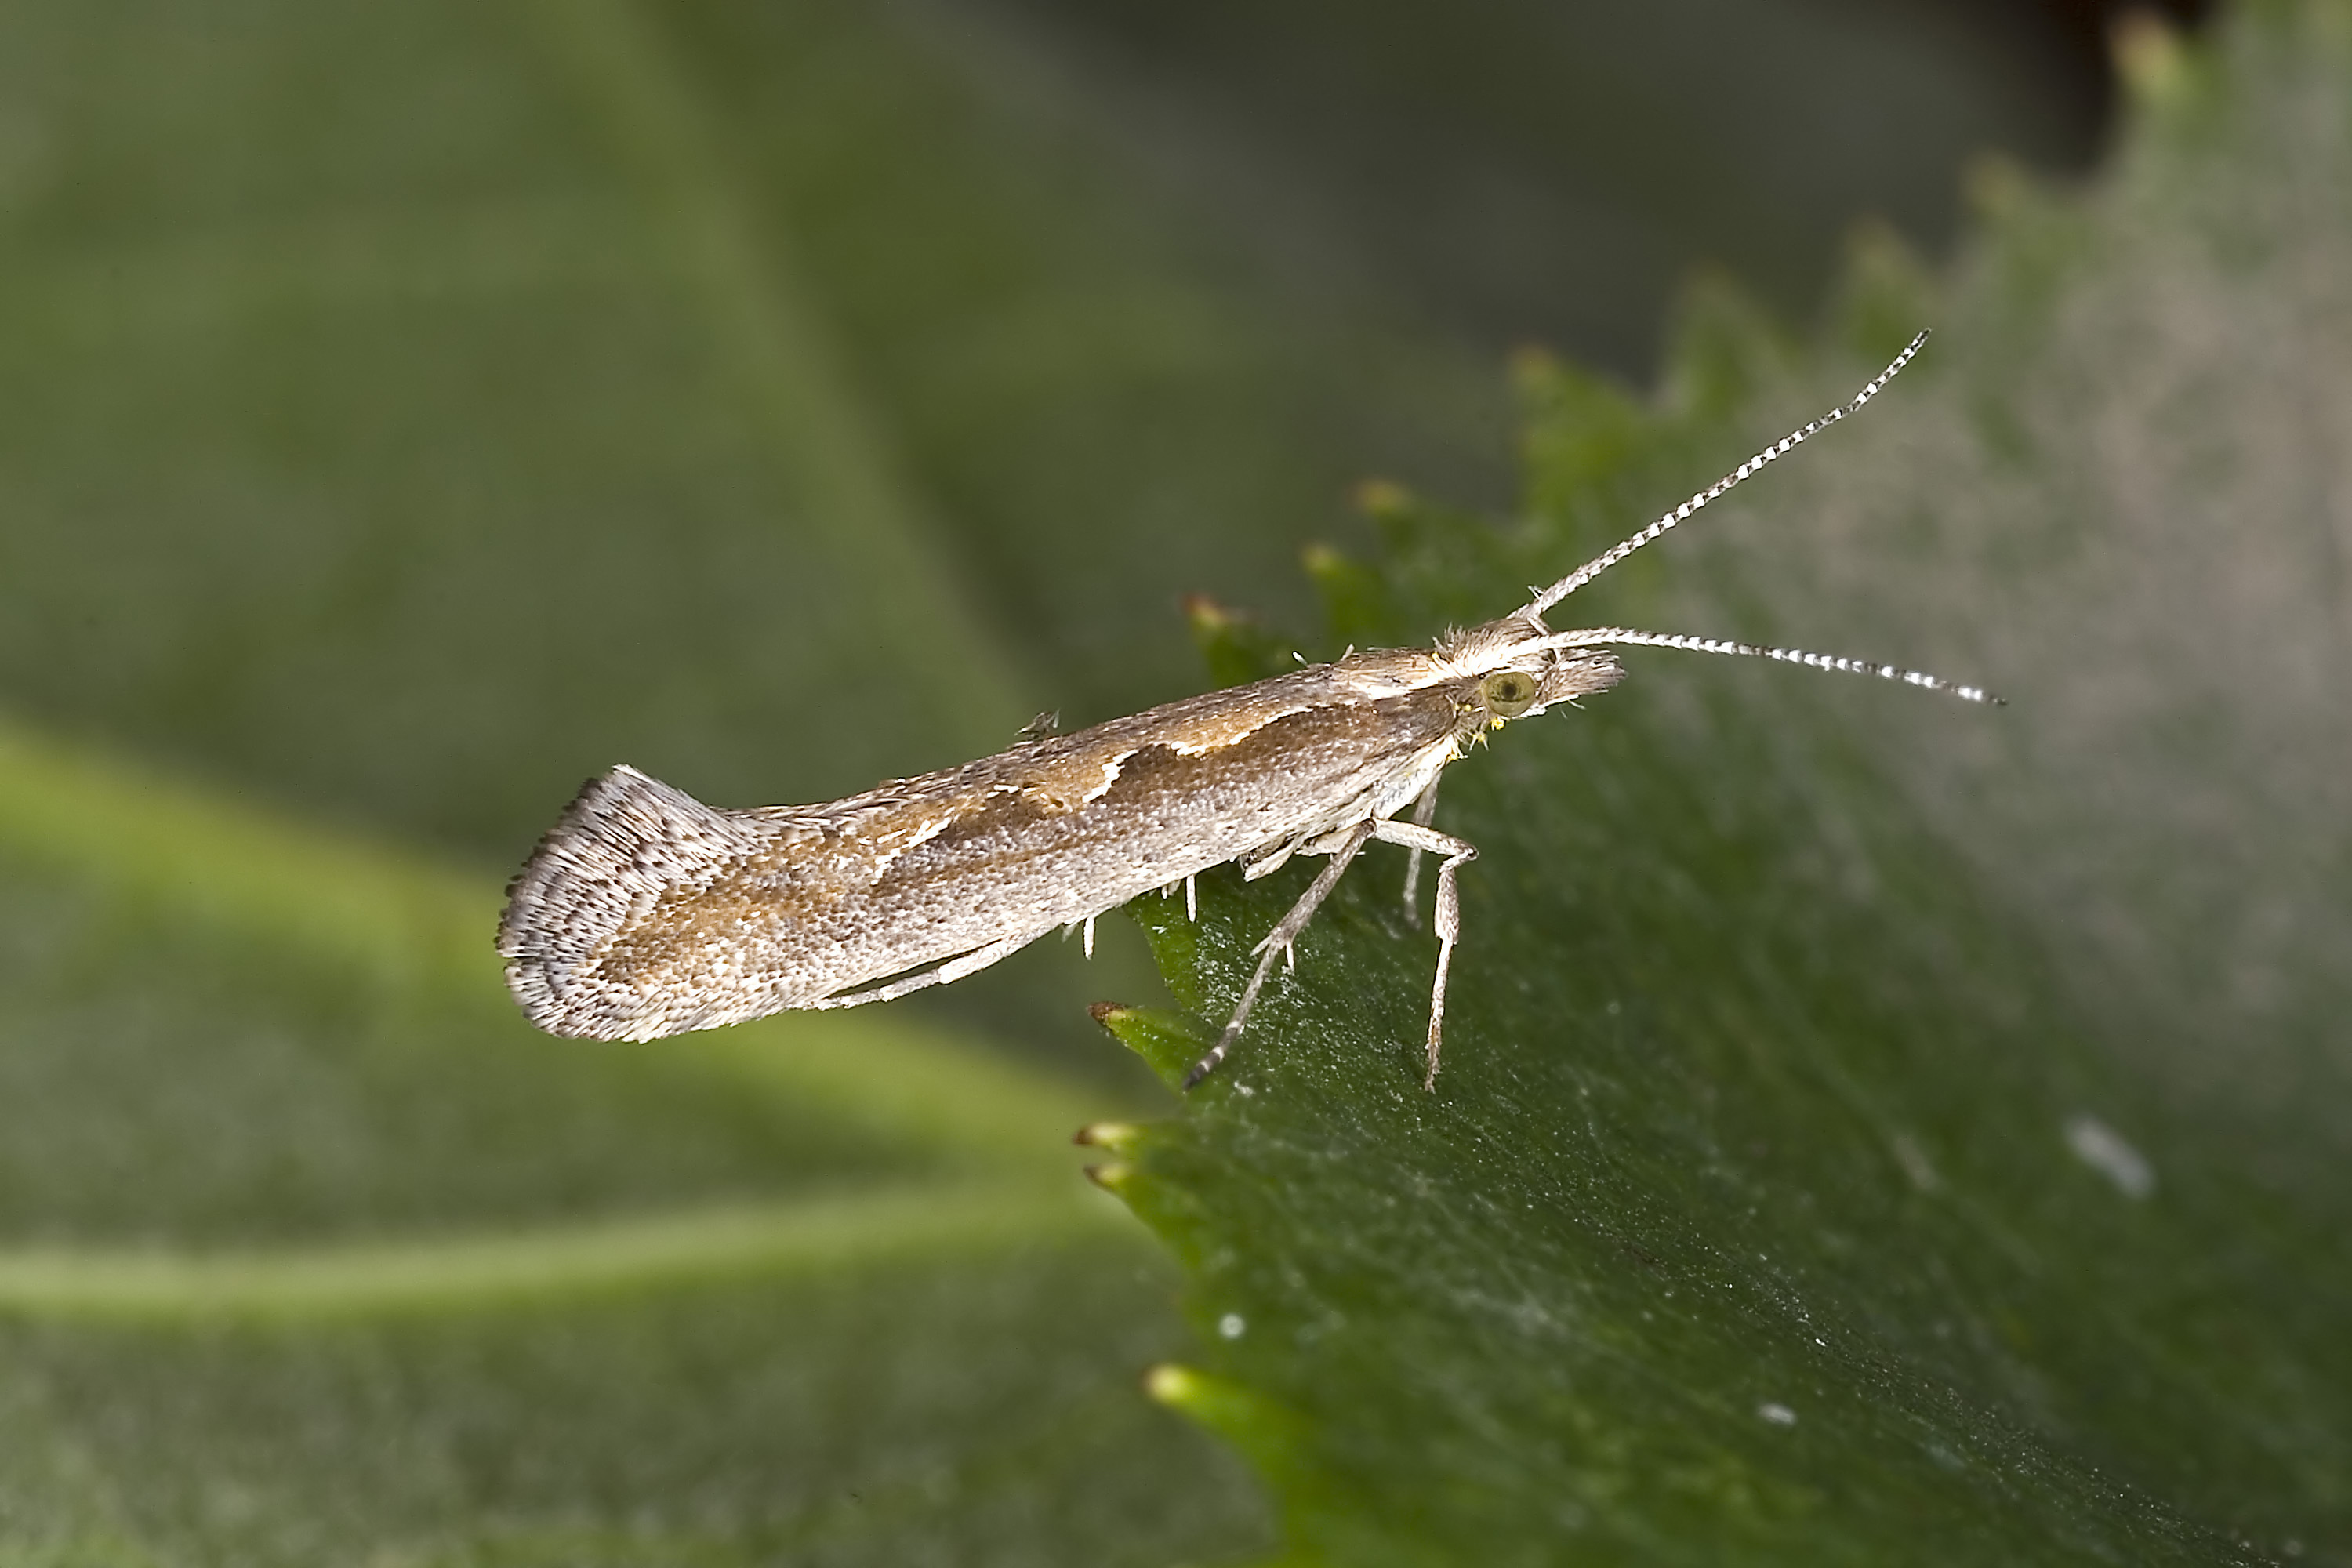 The pest has already been detected in high numbers in Fife and East Lothian.